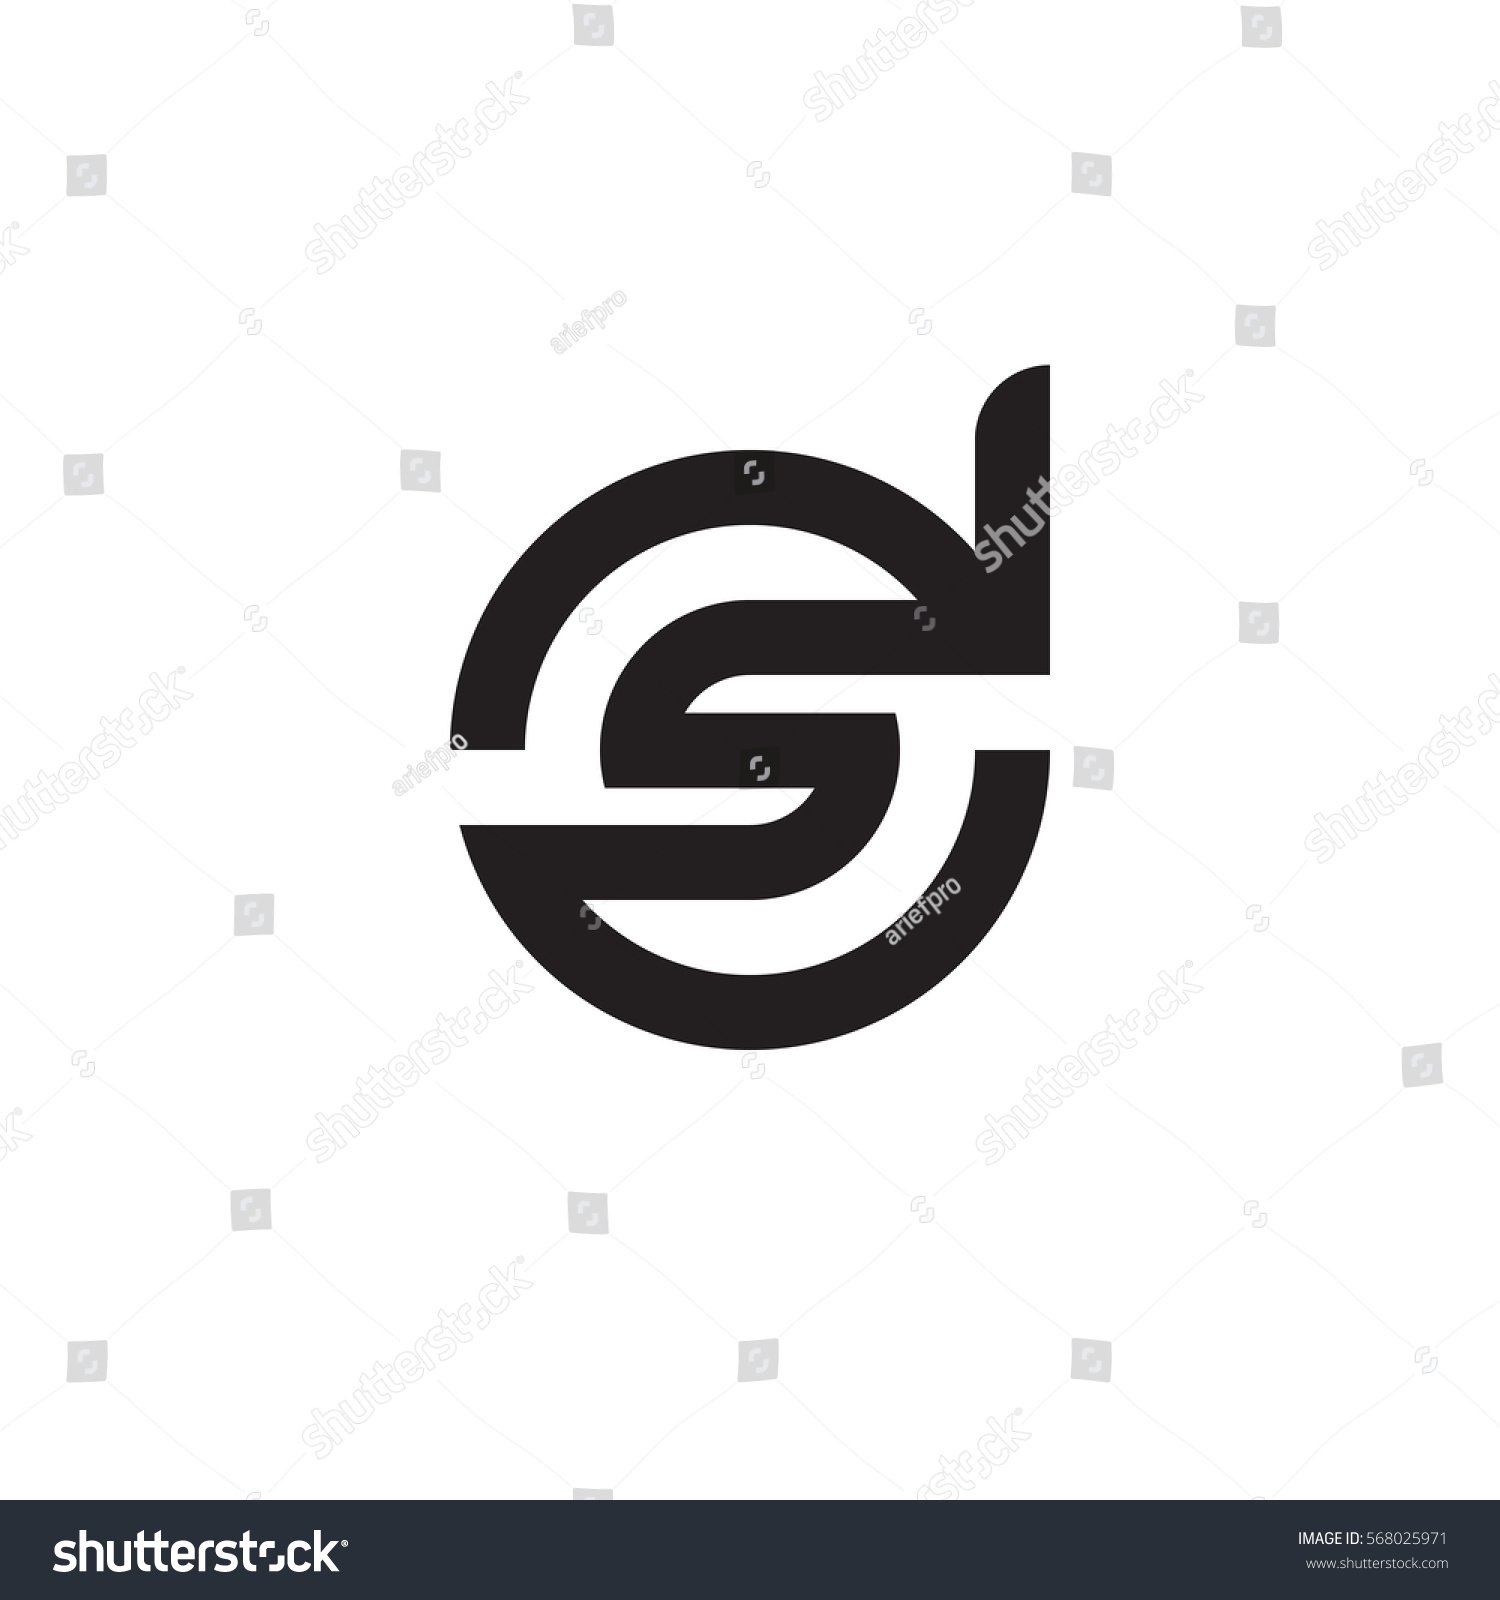 initial letter logo ds sd s stock vector royalty free 568025971 https www shutterstock com image vector initial letter logo ds sd s 568025971